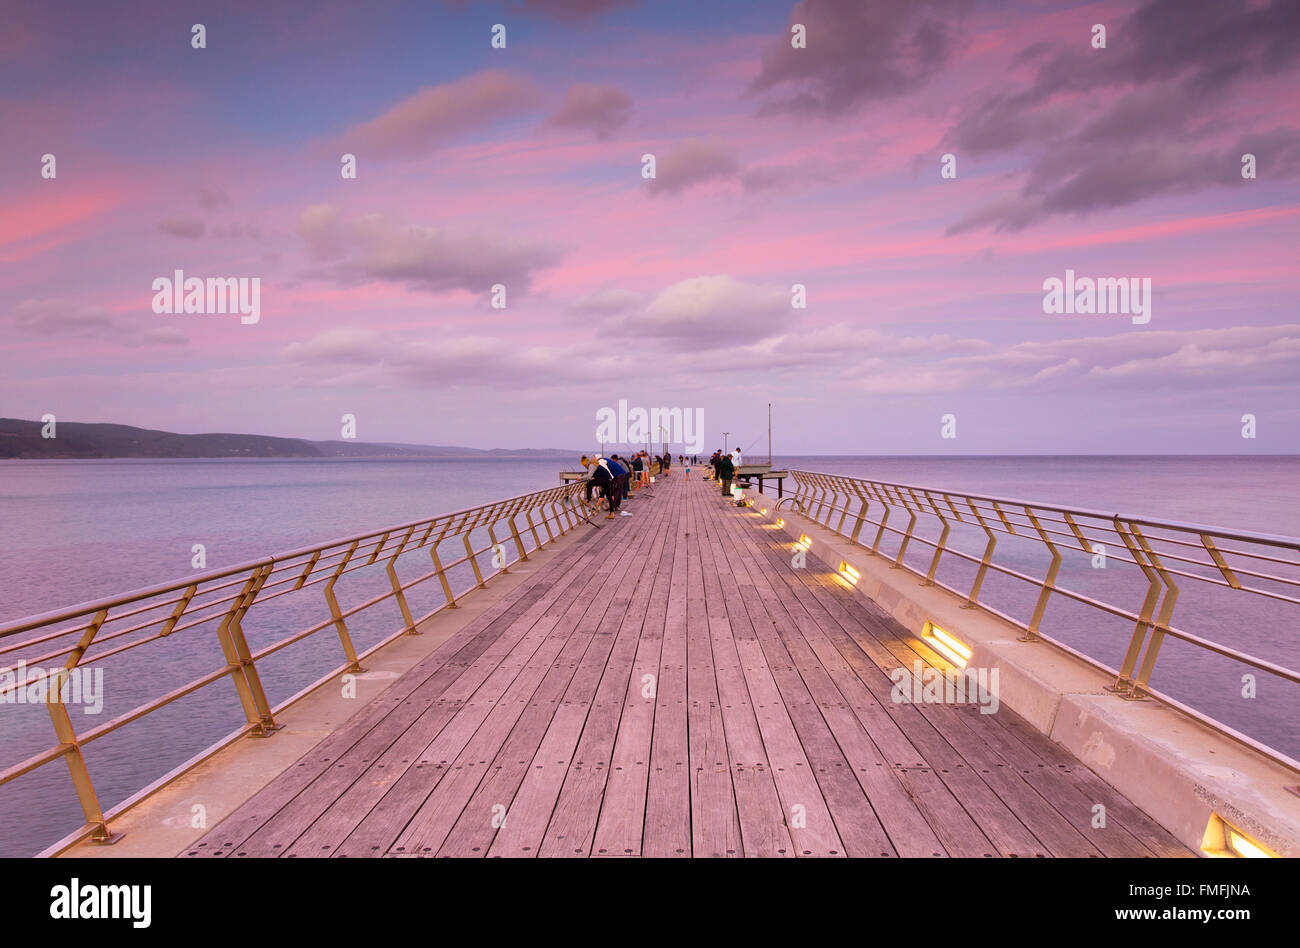 Pier at sunset, Lorne, Great Ocean Road, Victoria, Australie Photo Stock